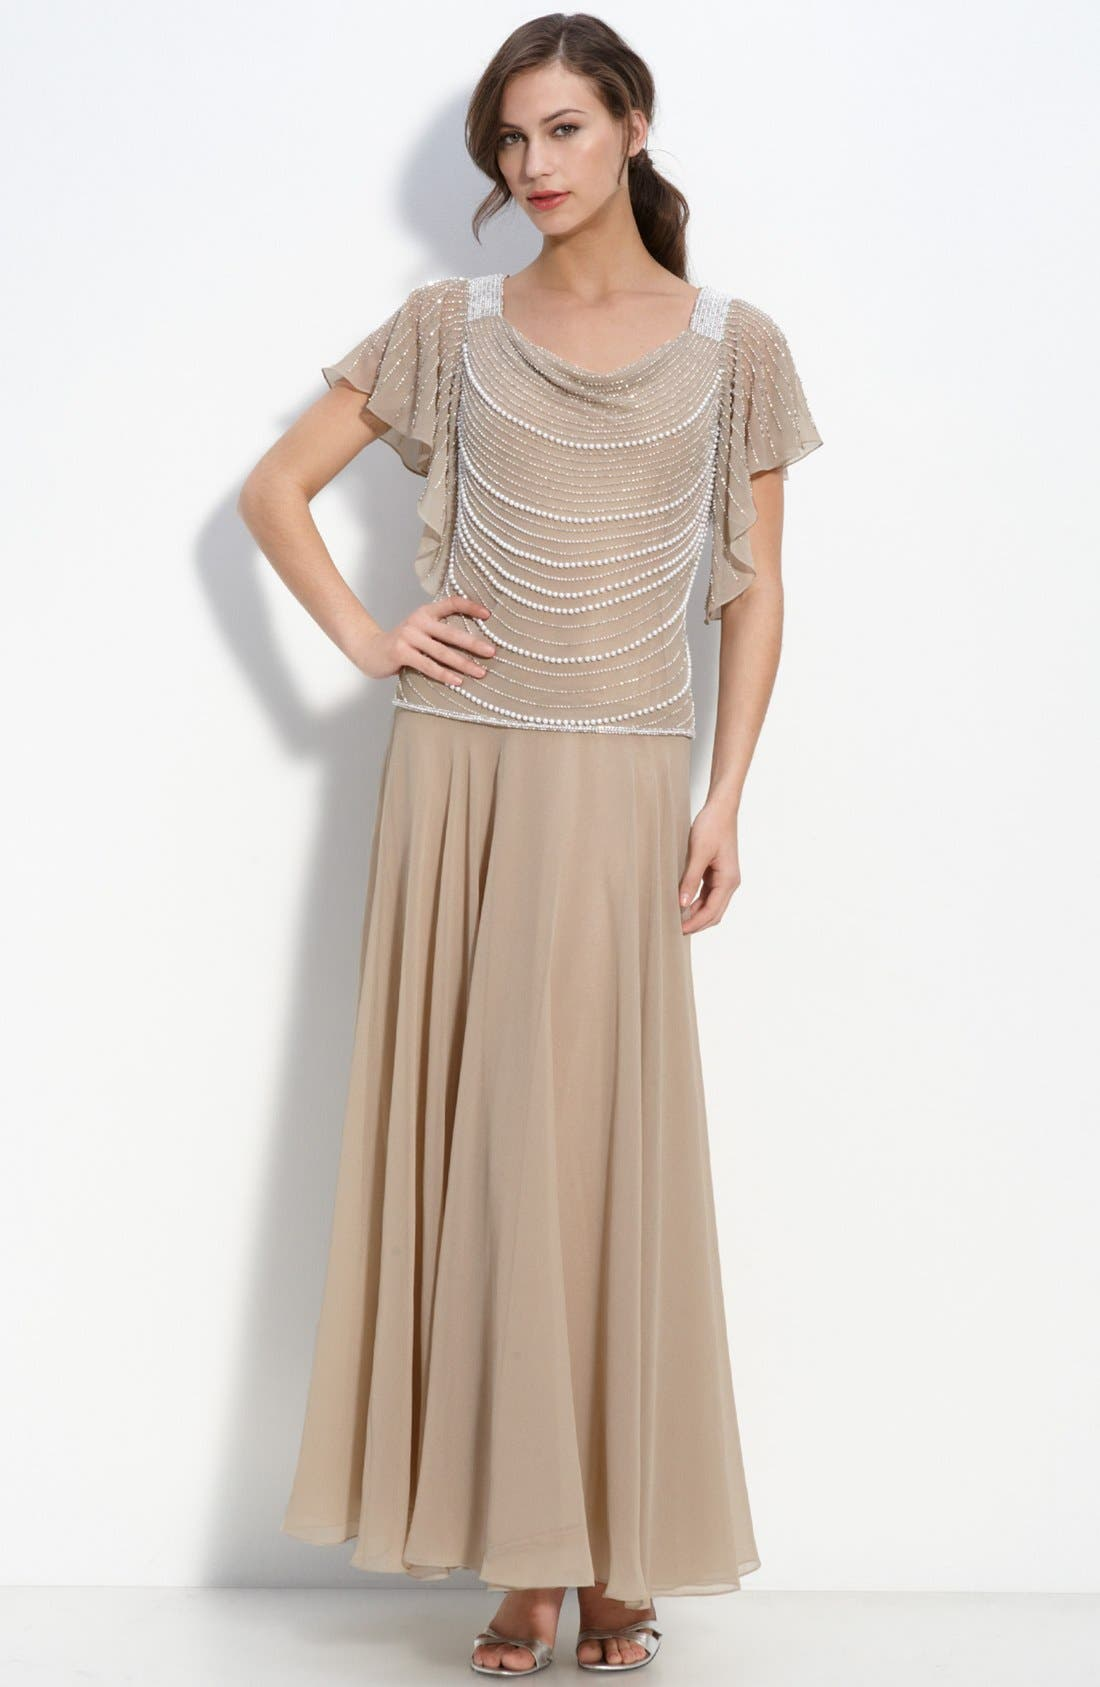 Alternate Image 1 Selected - J Kara Beaded Mock Two-Piece Crepe Dress